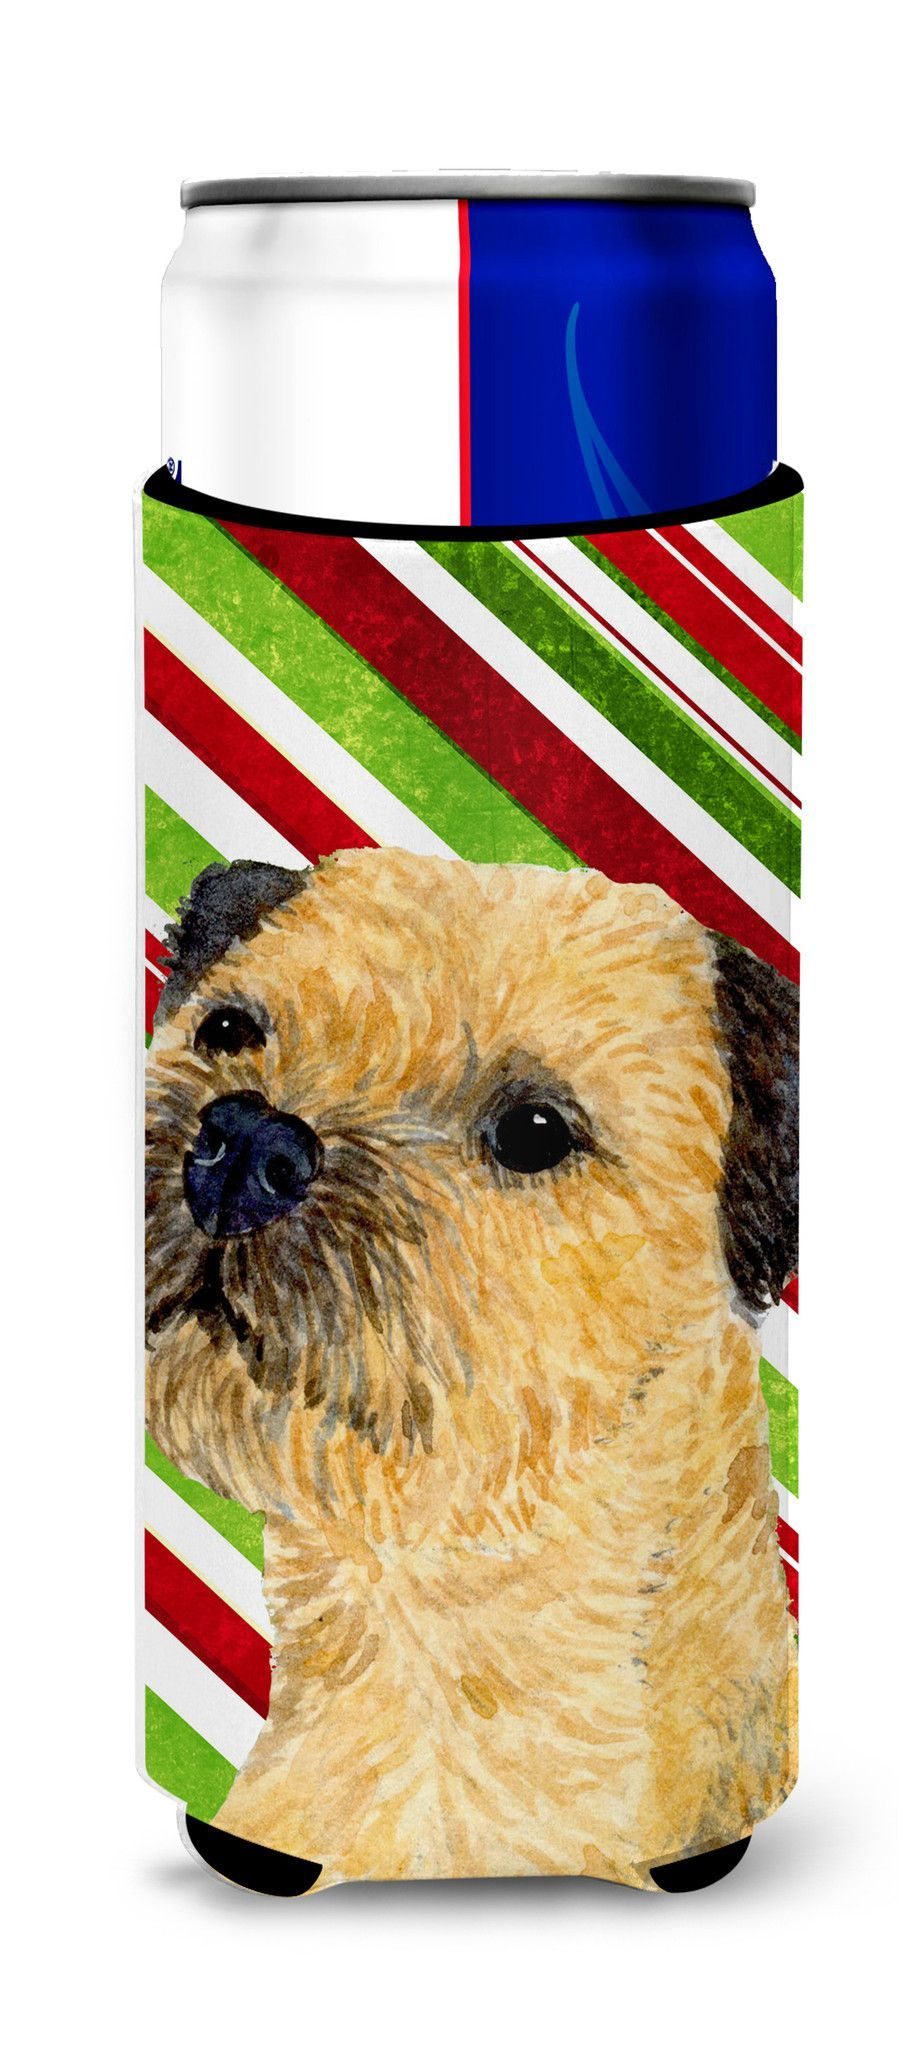 Border Terrier Candy Cane Holiday Christmas Ultra Beverage Insulators for slim cans LH9233MUK